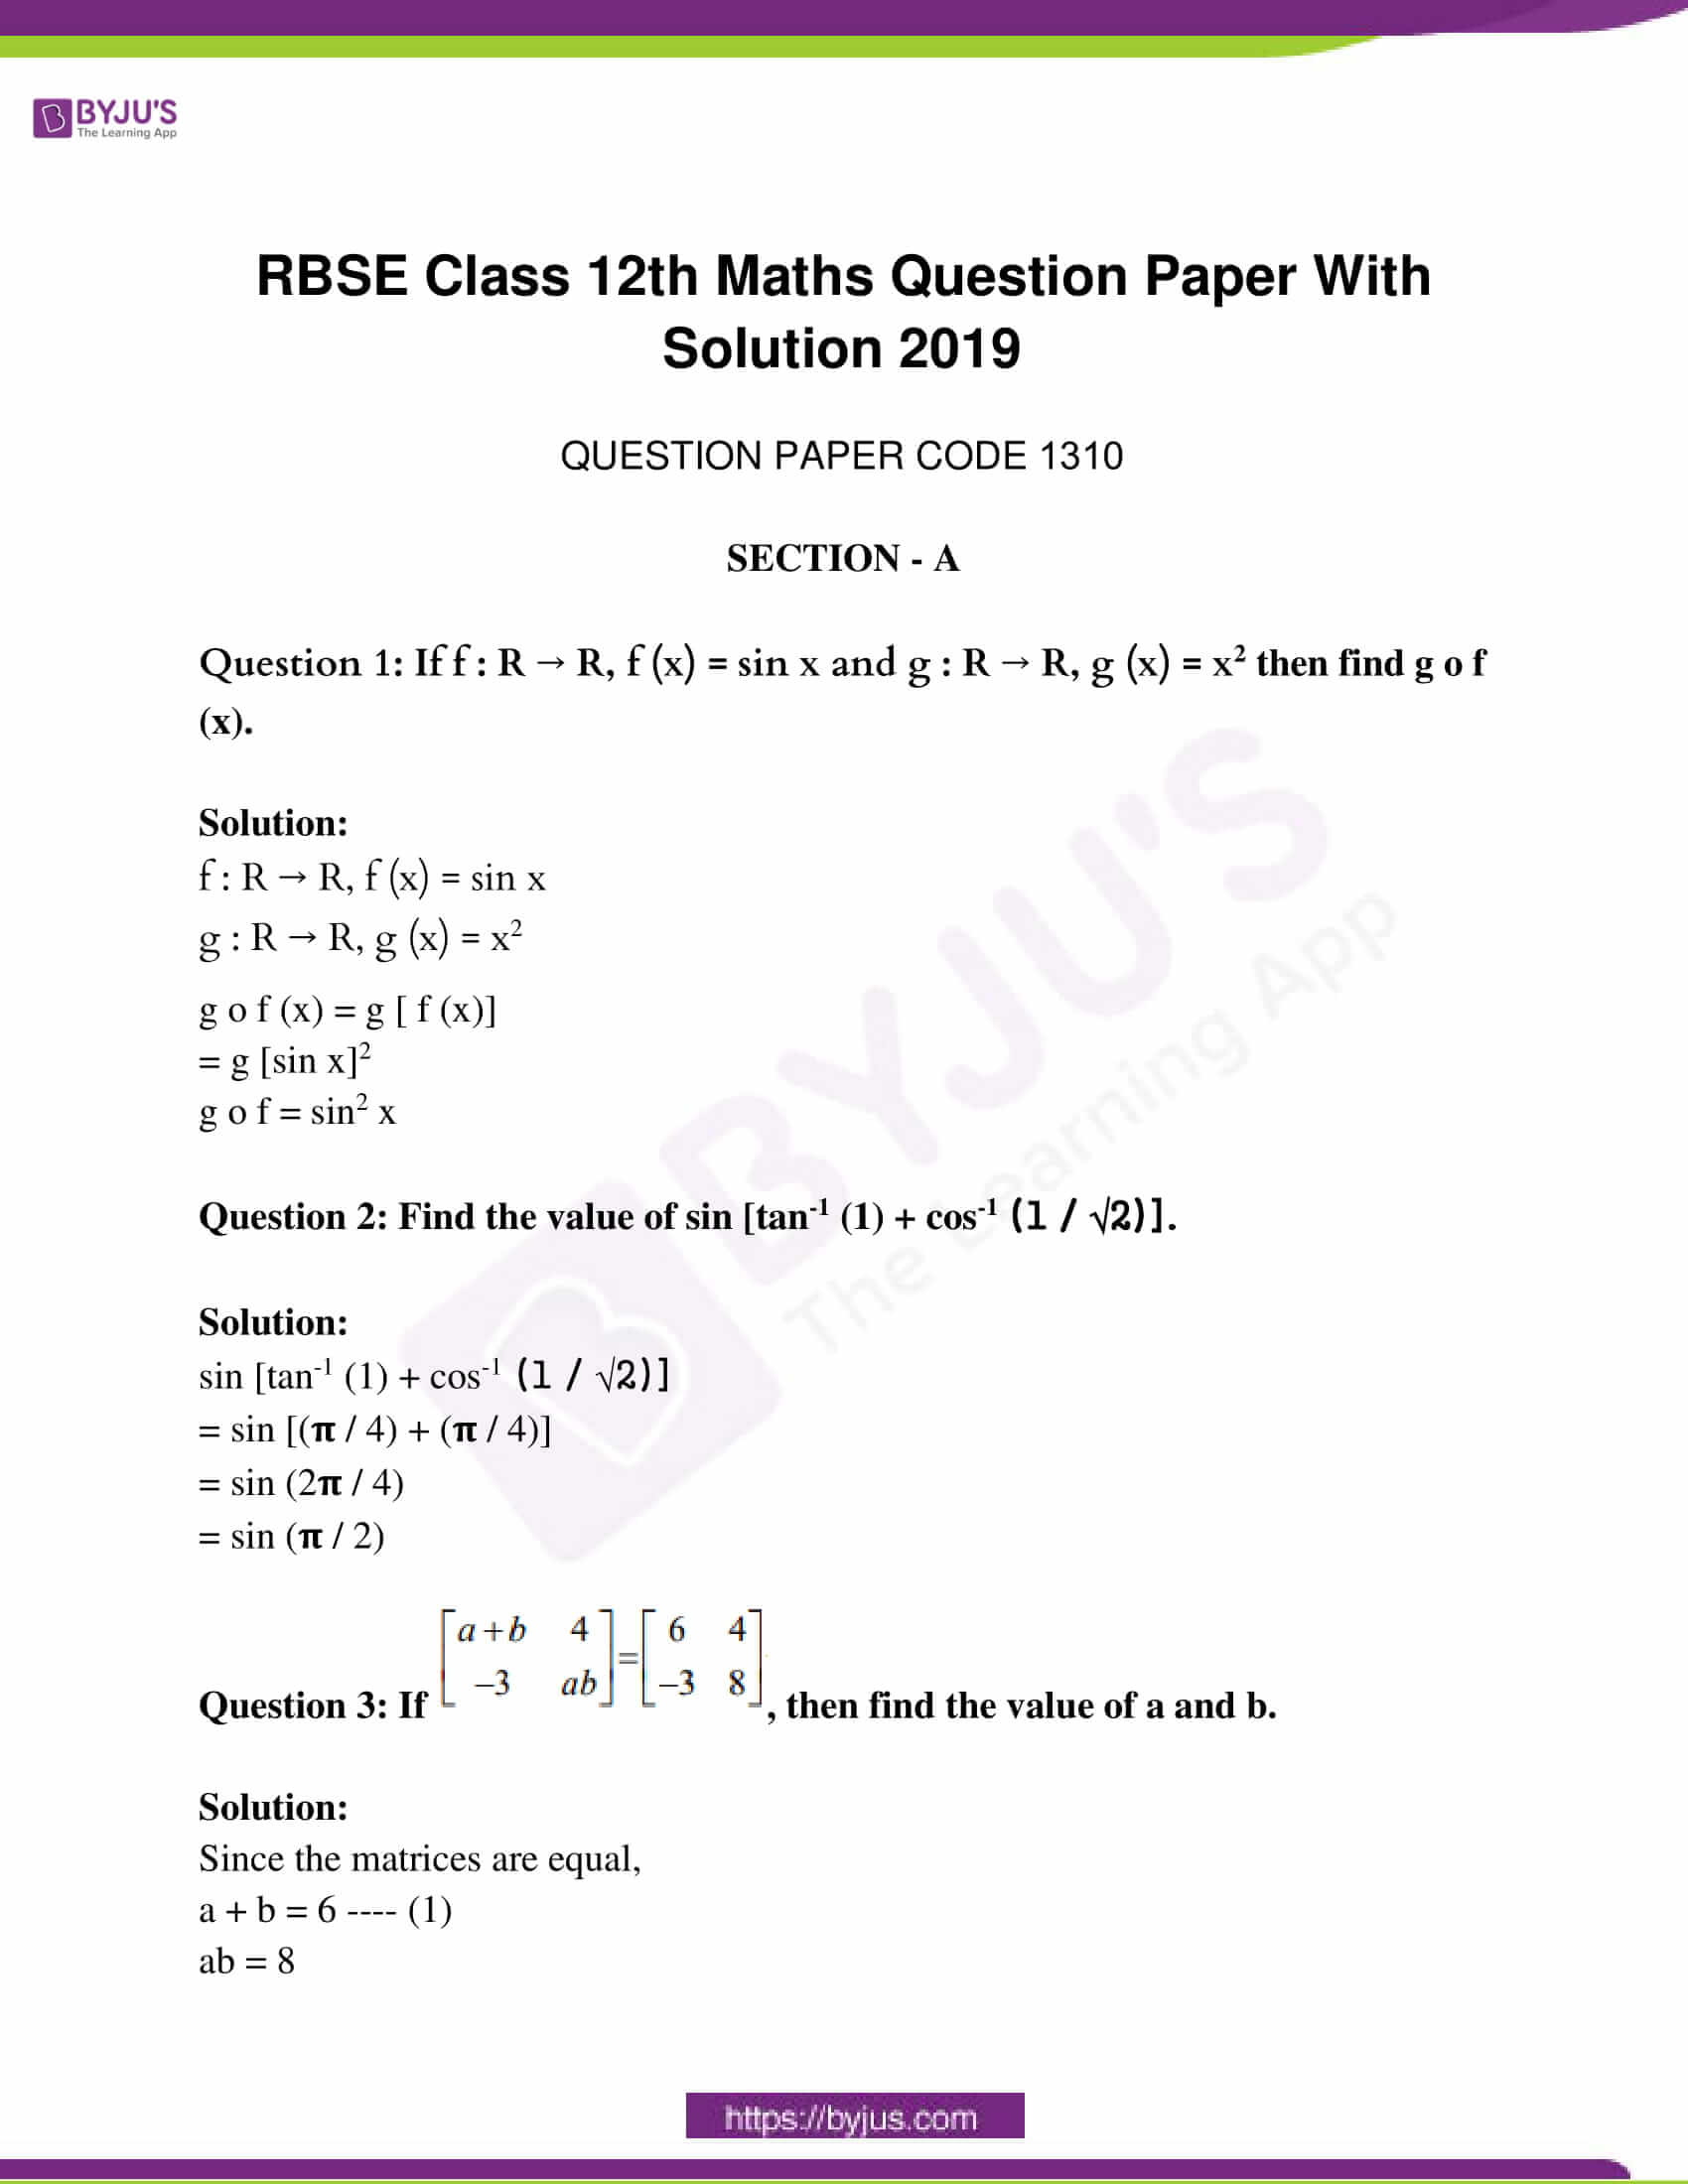 rajasthan class 12 exam question paper solutions march 2019 01